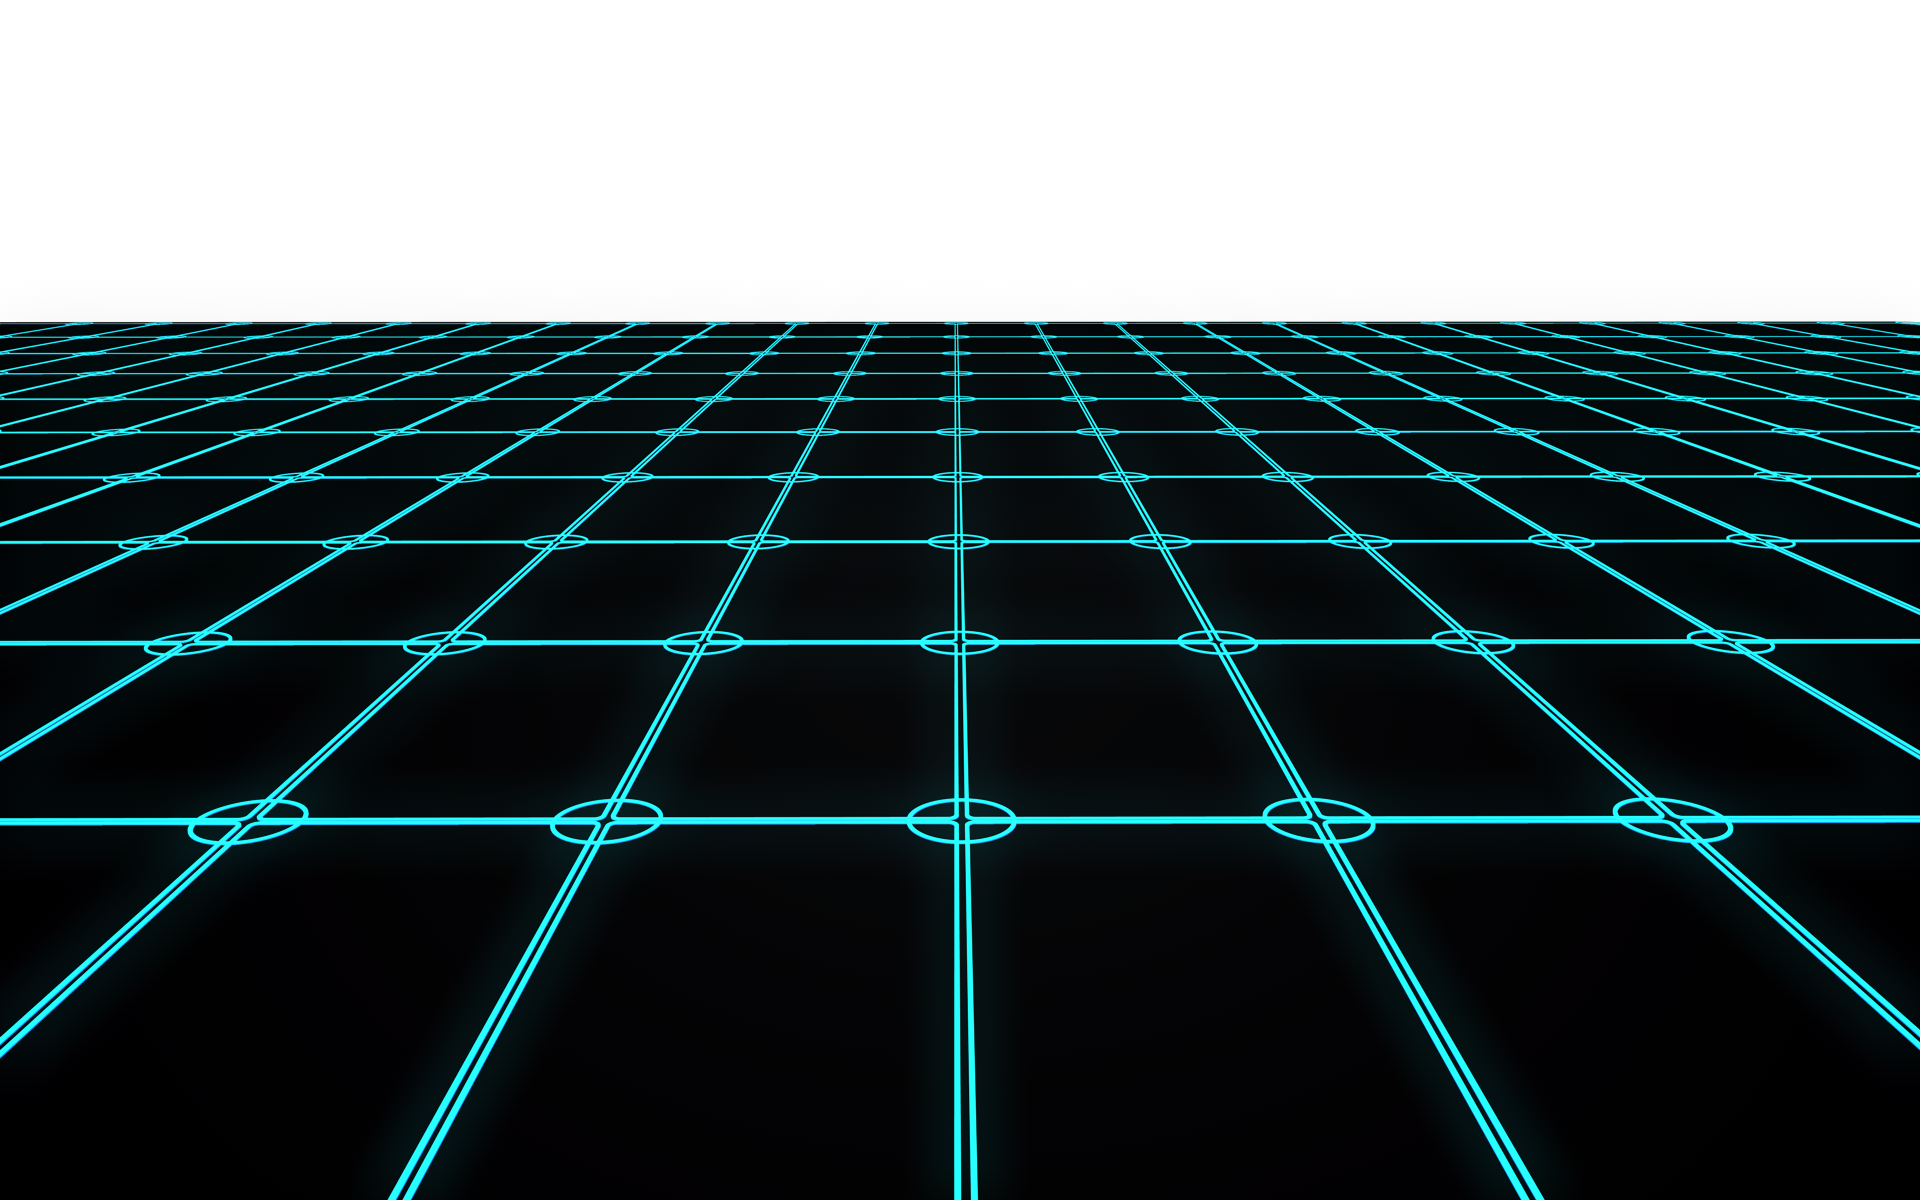 Another tron type by. Vaporwave vector grid floor svg royalty free